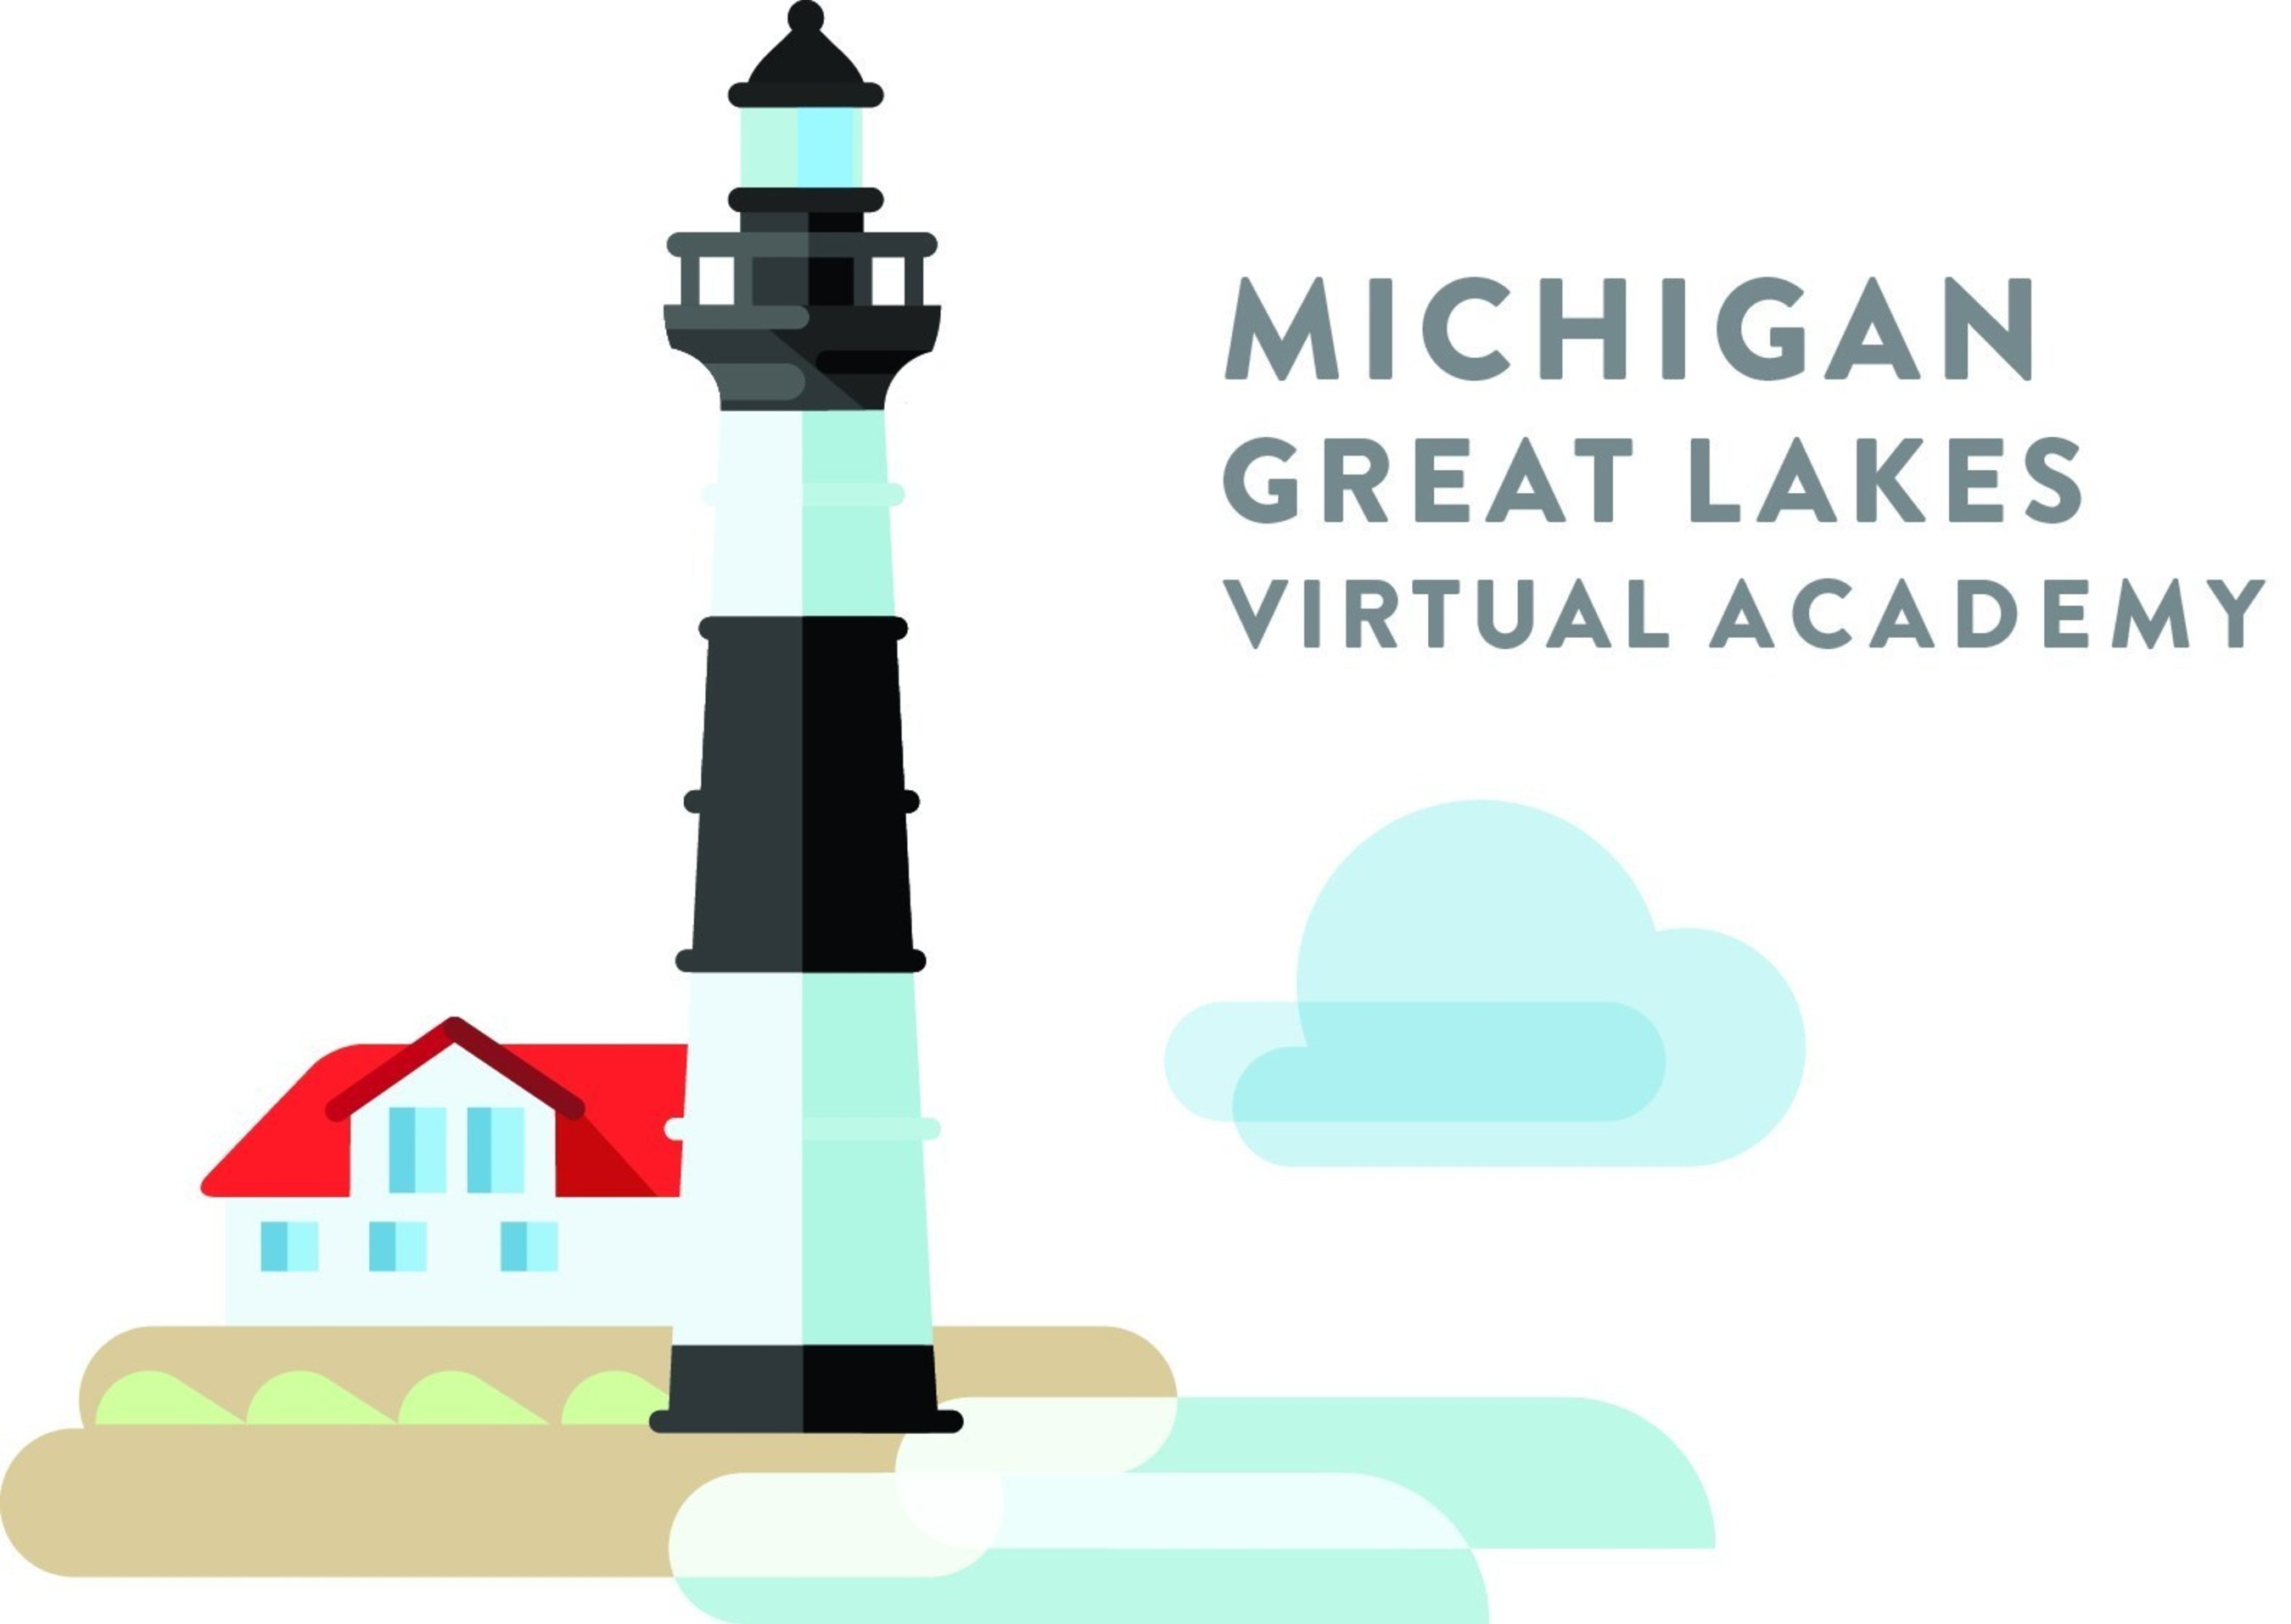 Michigan Great Lakes Virtual Academy Opens K-12 Enrollment for 2015-2016 Academic Year